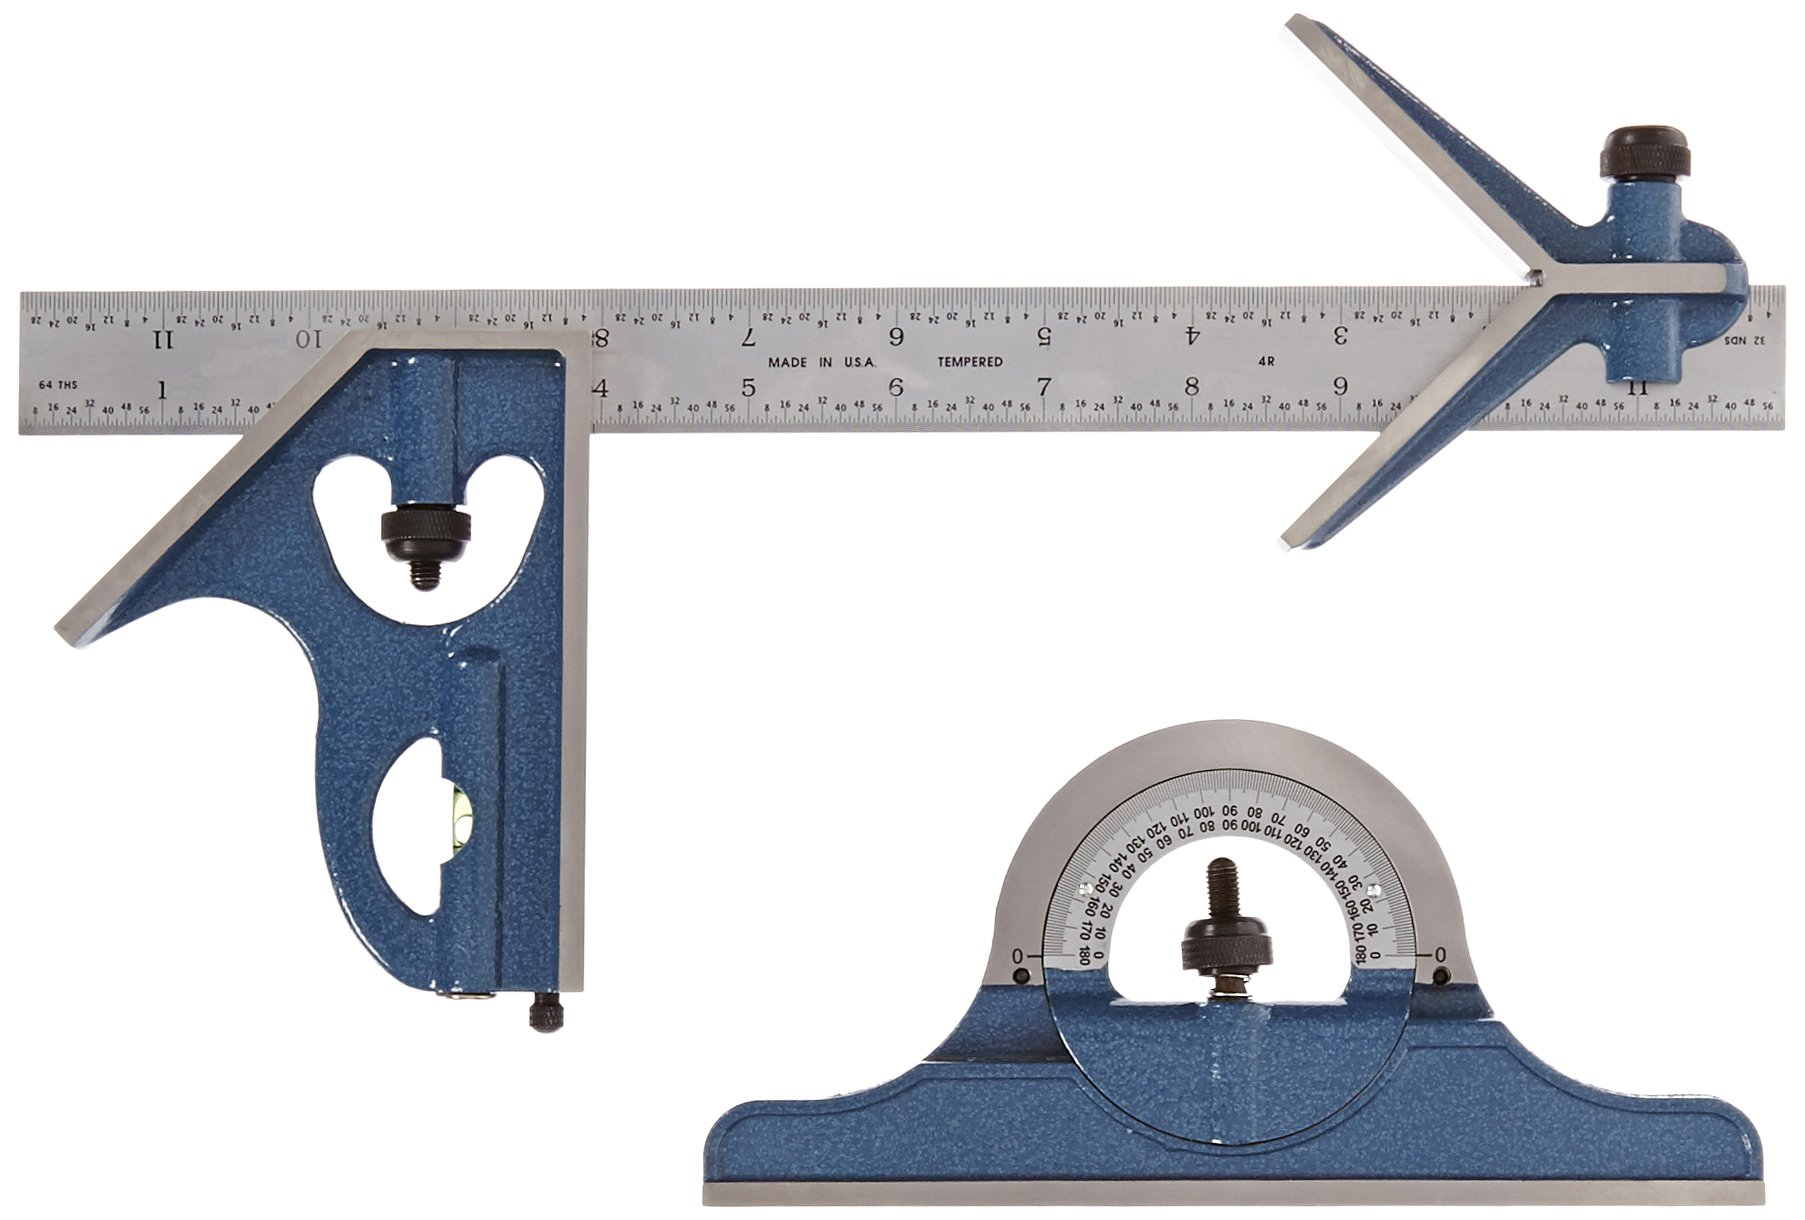 Fowler 52-385-012 Steel Combination Square Set Includes with Baked Blue Enamel Finish, 4R Graduation Interval, 12'' Length